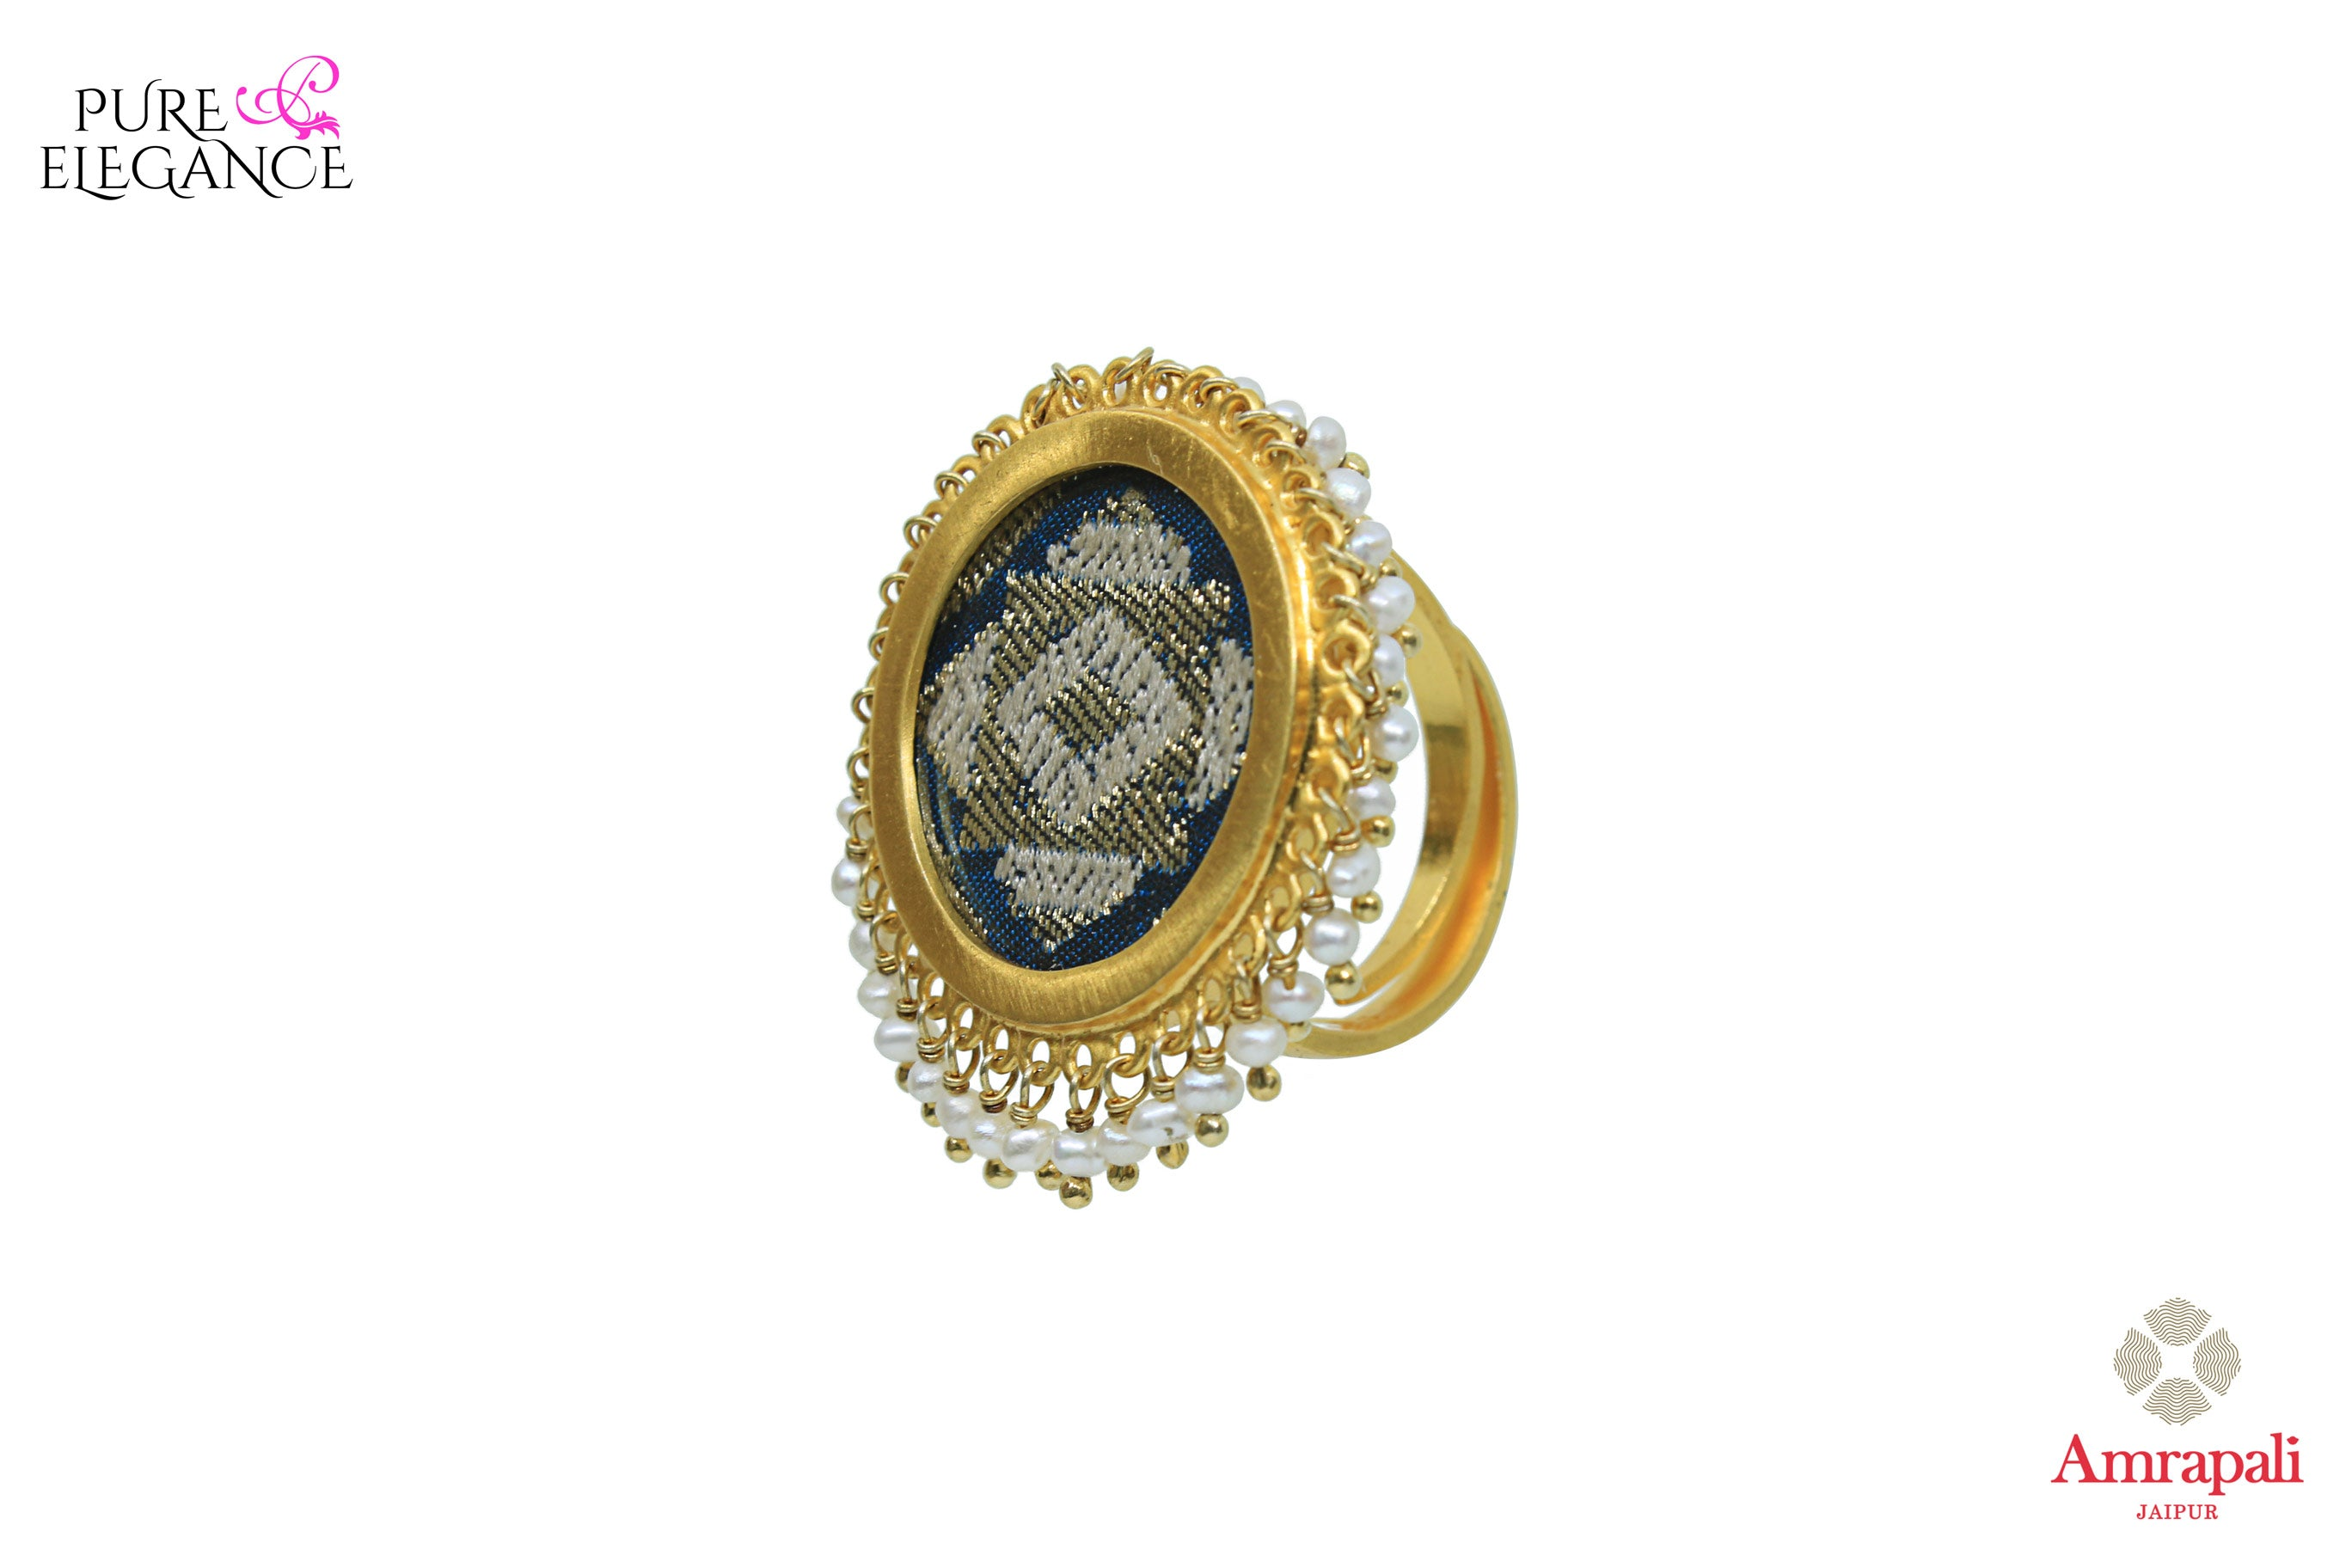 Buy Amrapali silver gold plated ring online in USA with hanging pearls. An exquisite collection of beautiful Indian silver gold plated jewelry is waiting at Pure Elegance exclusive Indian fashion store in USA or shop online at the comfort of your home.-side view